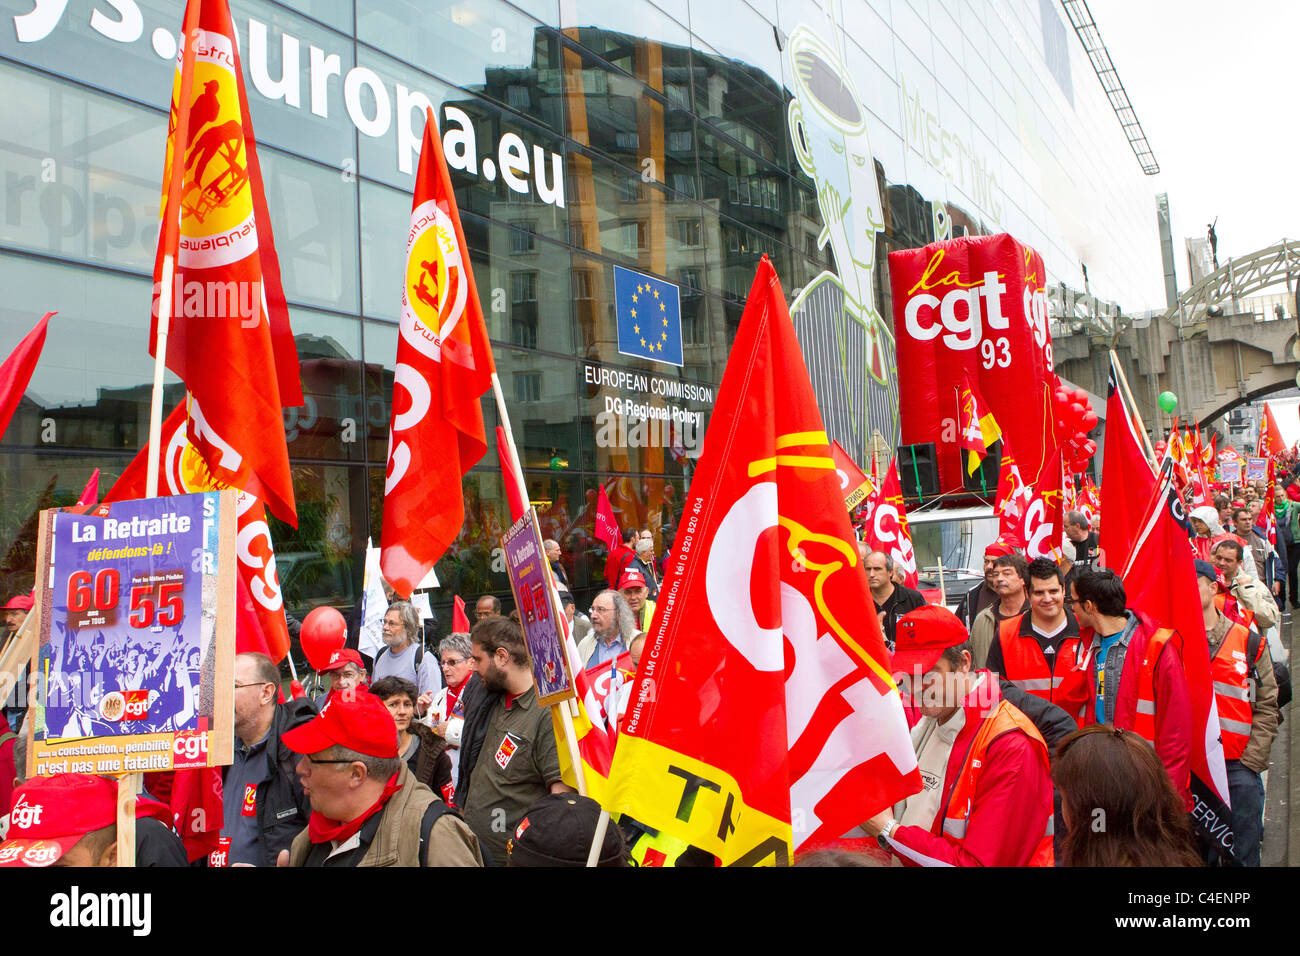 transport unions protest march at european commission brussels belgium - Stock Image